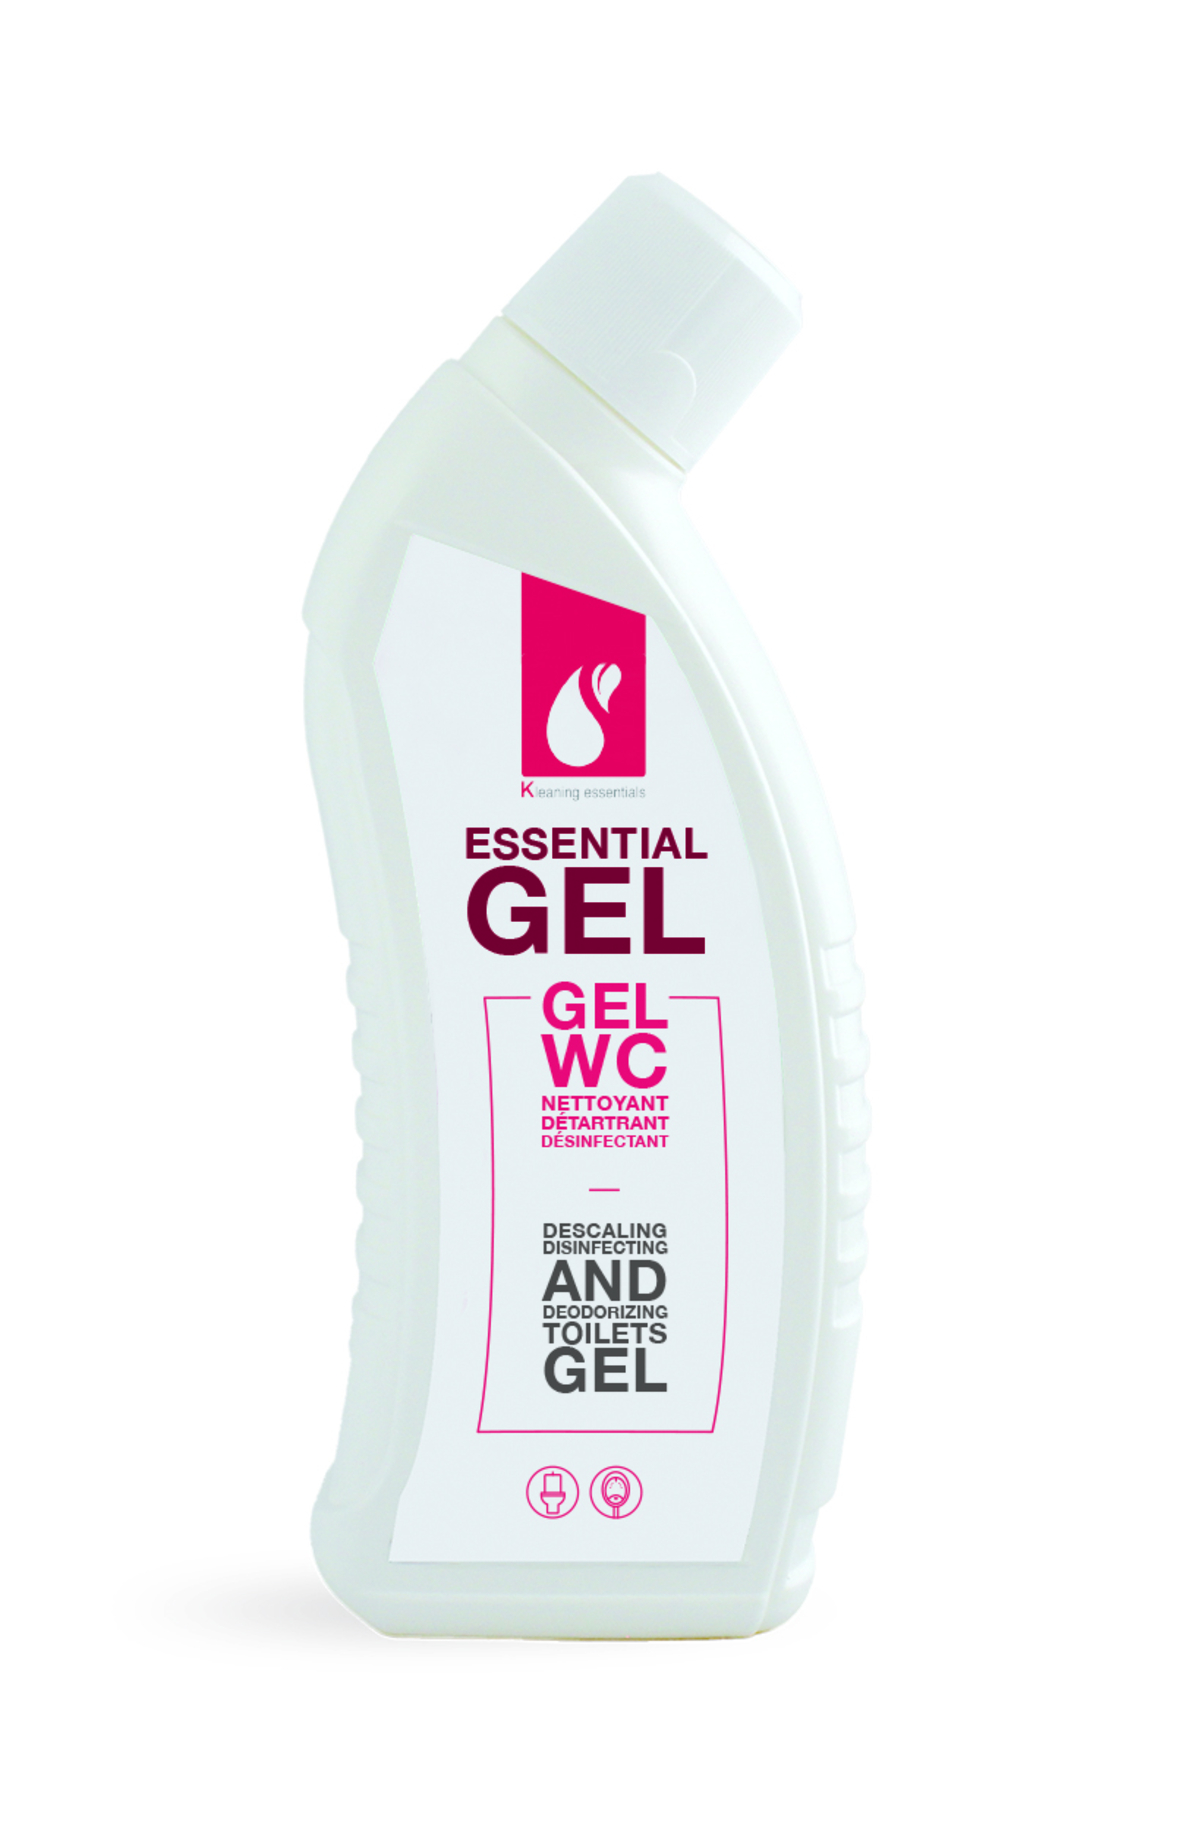 Gel wc détartrant désinfectant désodorisant 750 ml Kleaning Essentials